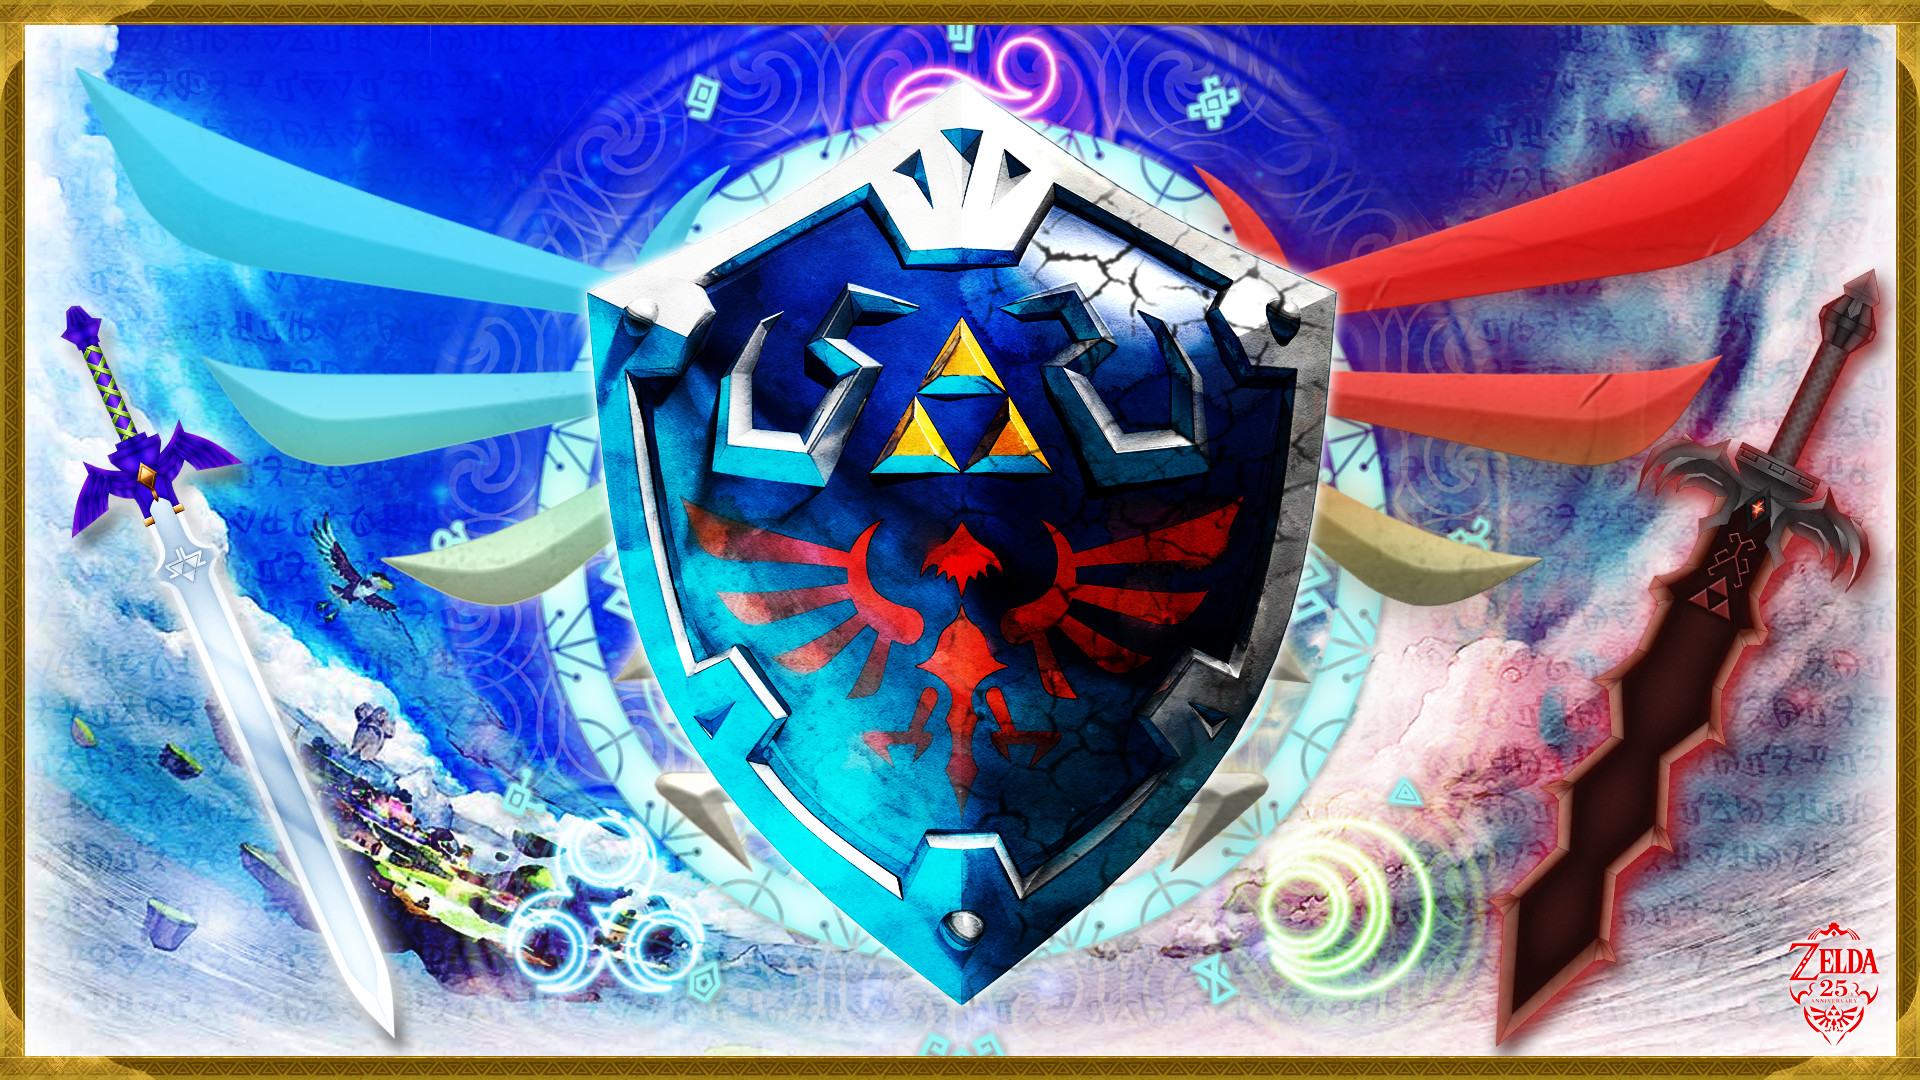 1920x1080 Video Game - The Legend Of Zelda: Skyward Sword Link Zelda Shield Hylian  Wallpaper